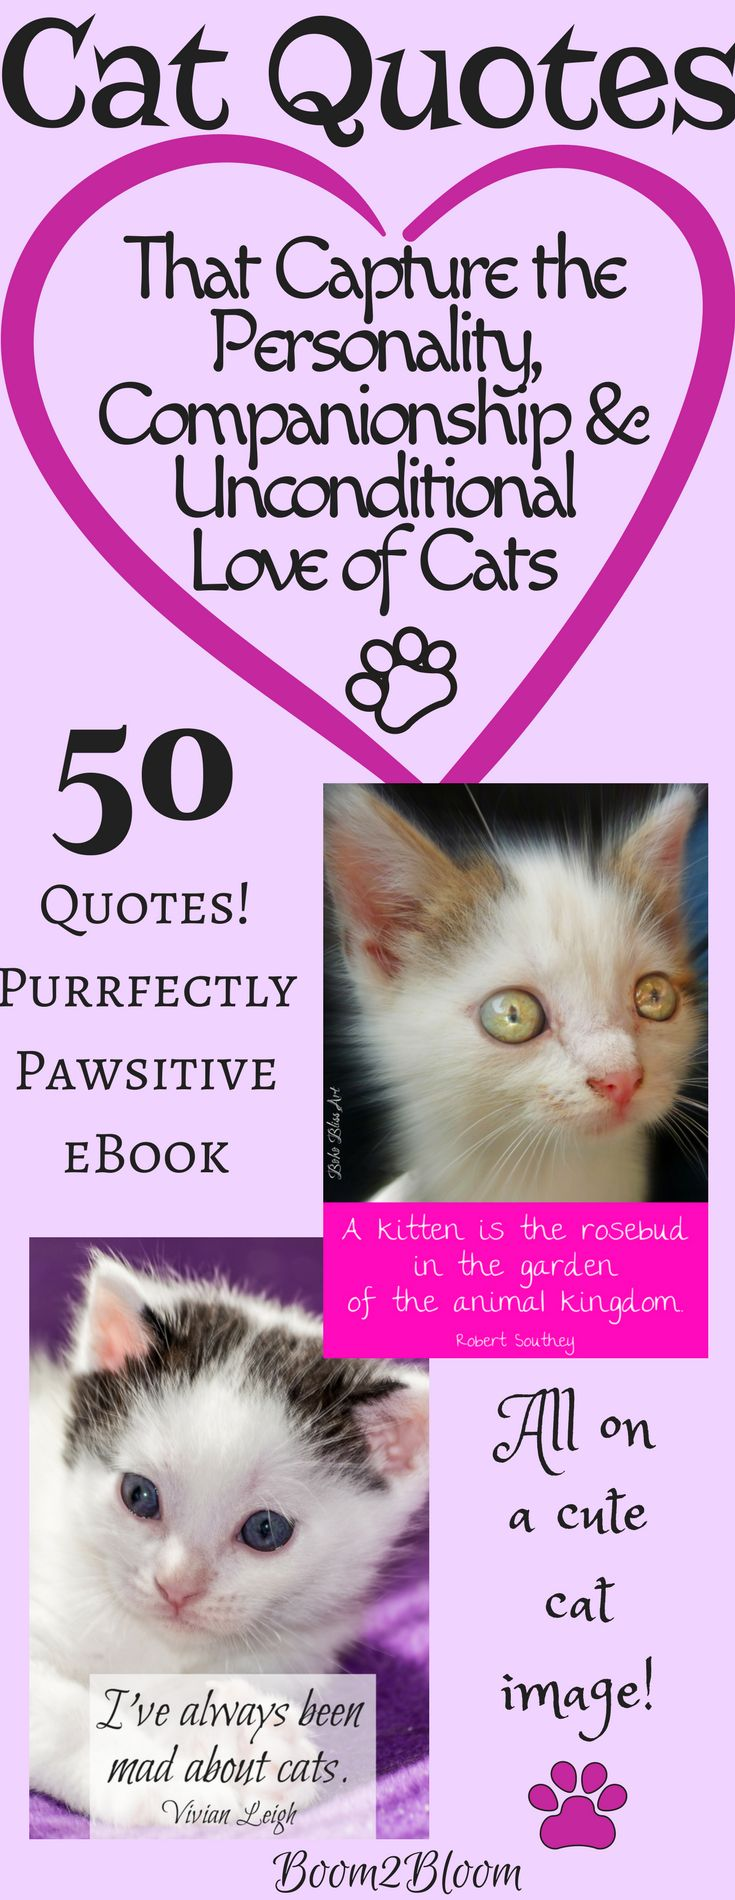 Purrfectly Pawsitive: 50 Quotes About Cats eBook by Sandra Watson. Now there are 50 quotes on gorgeous images of kittens and cats. These quotes capture the personality, companionship and unconditional love of cats! #Cats #CatQuotes #QuotesAboutCats #eBook #Kittens #Pets #CatArt #Animals #CatEBook